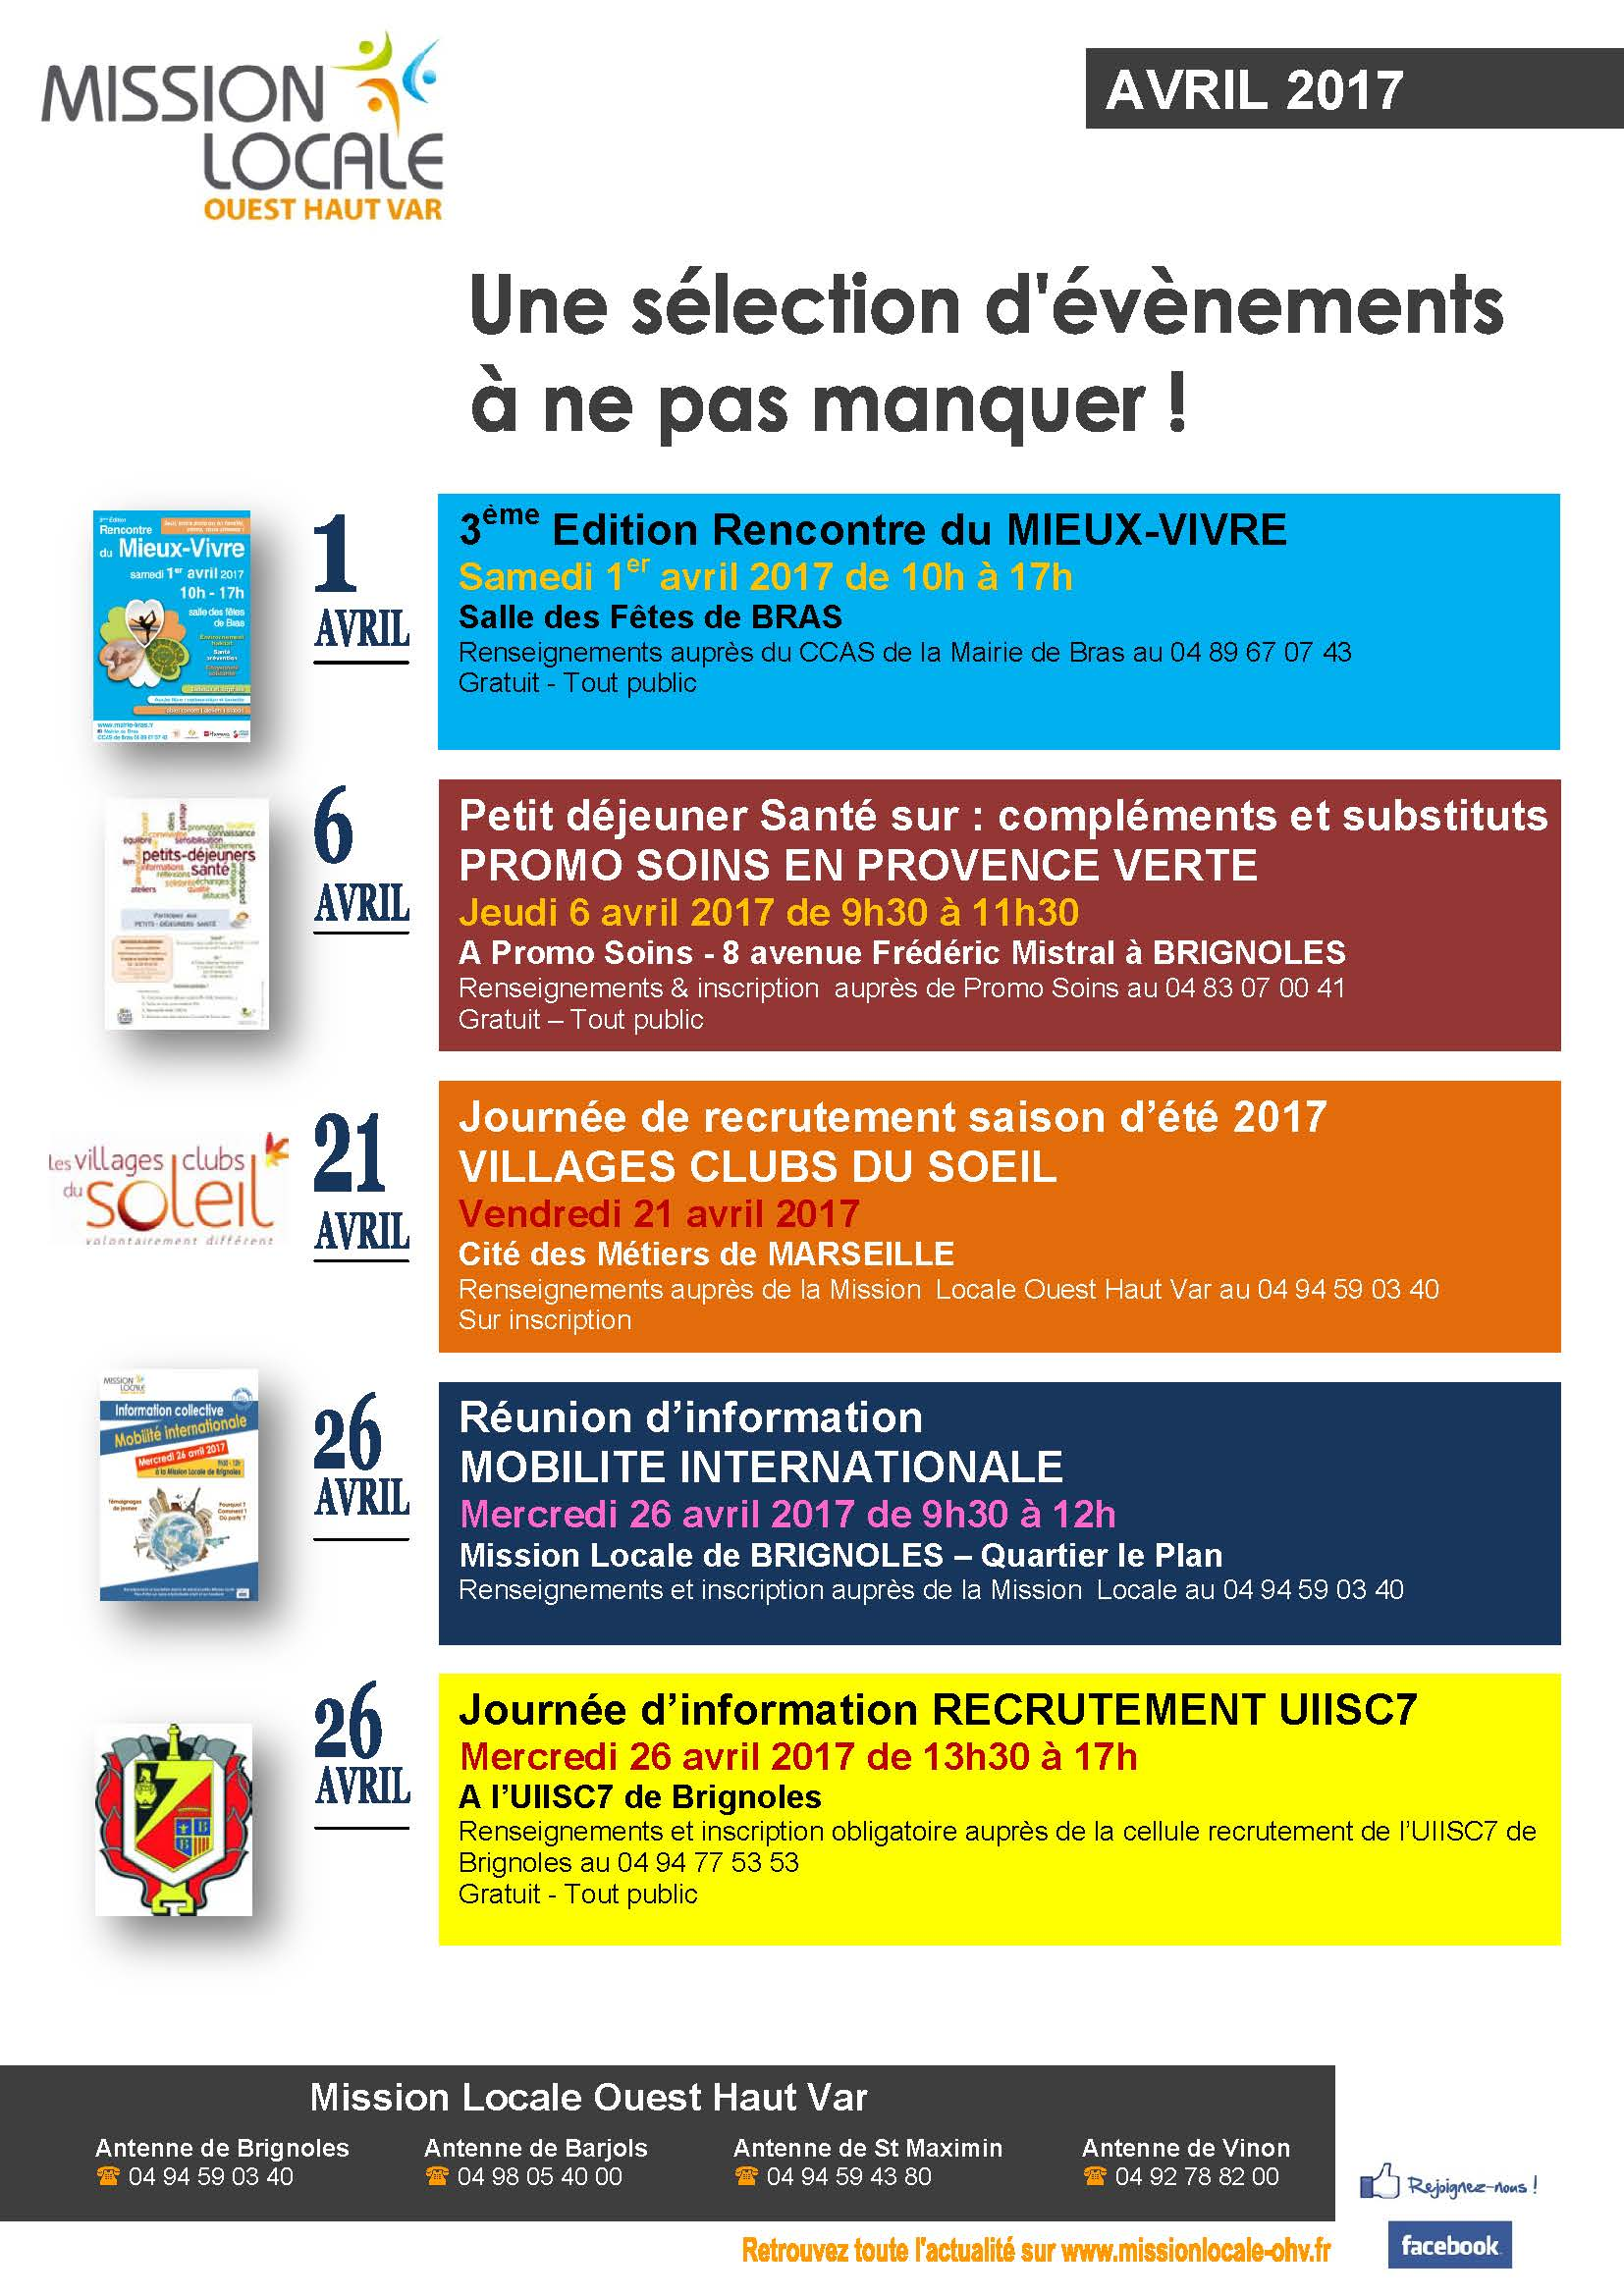 Affiche EVENEMENTS A NE PAS MANQUER - Avril 2017